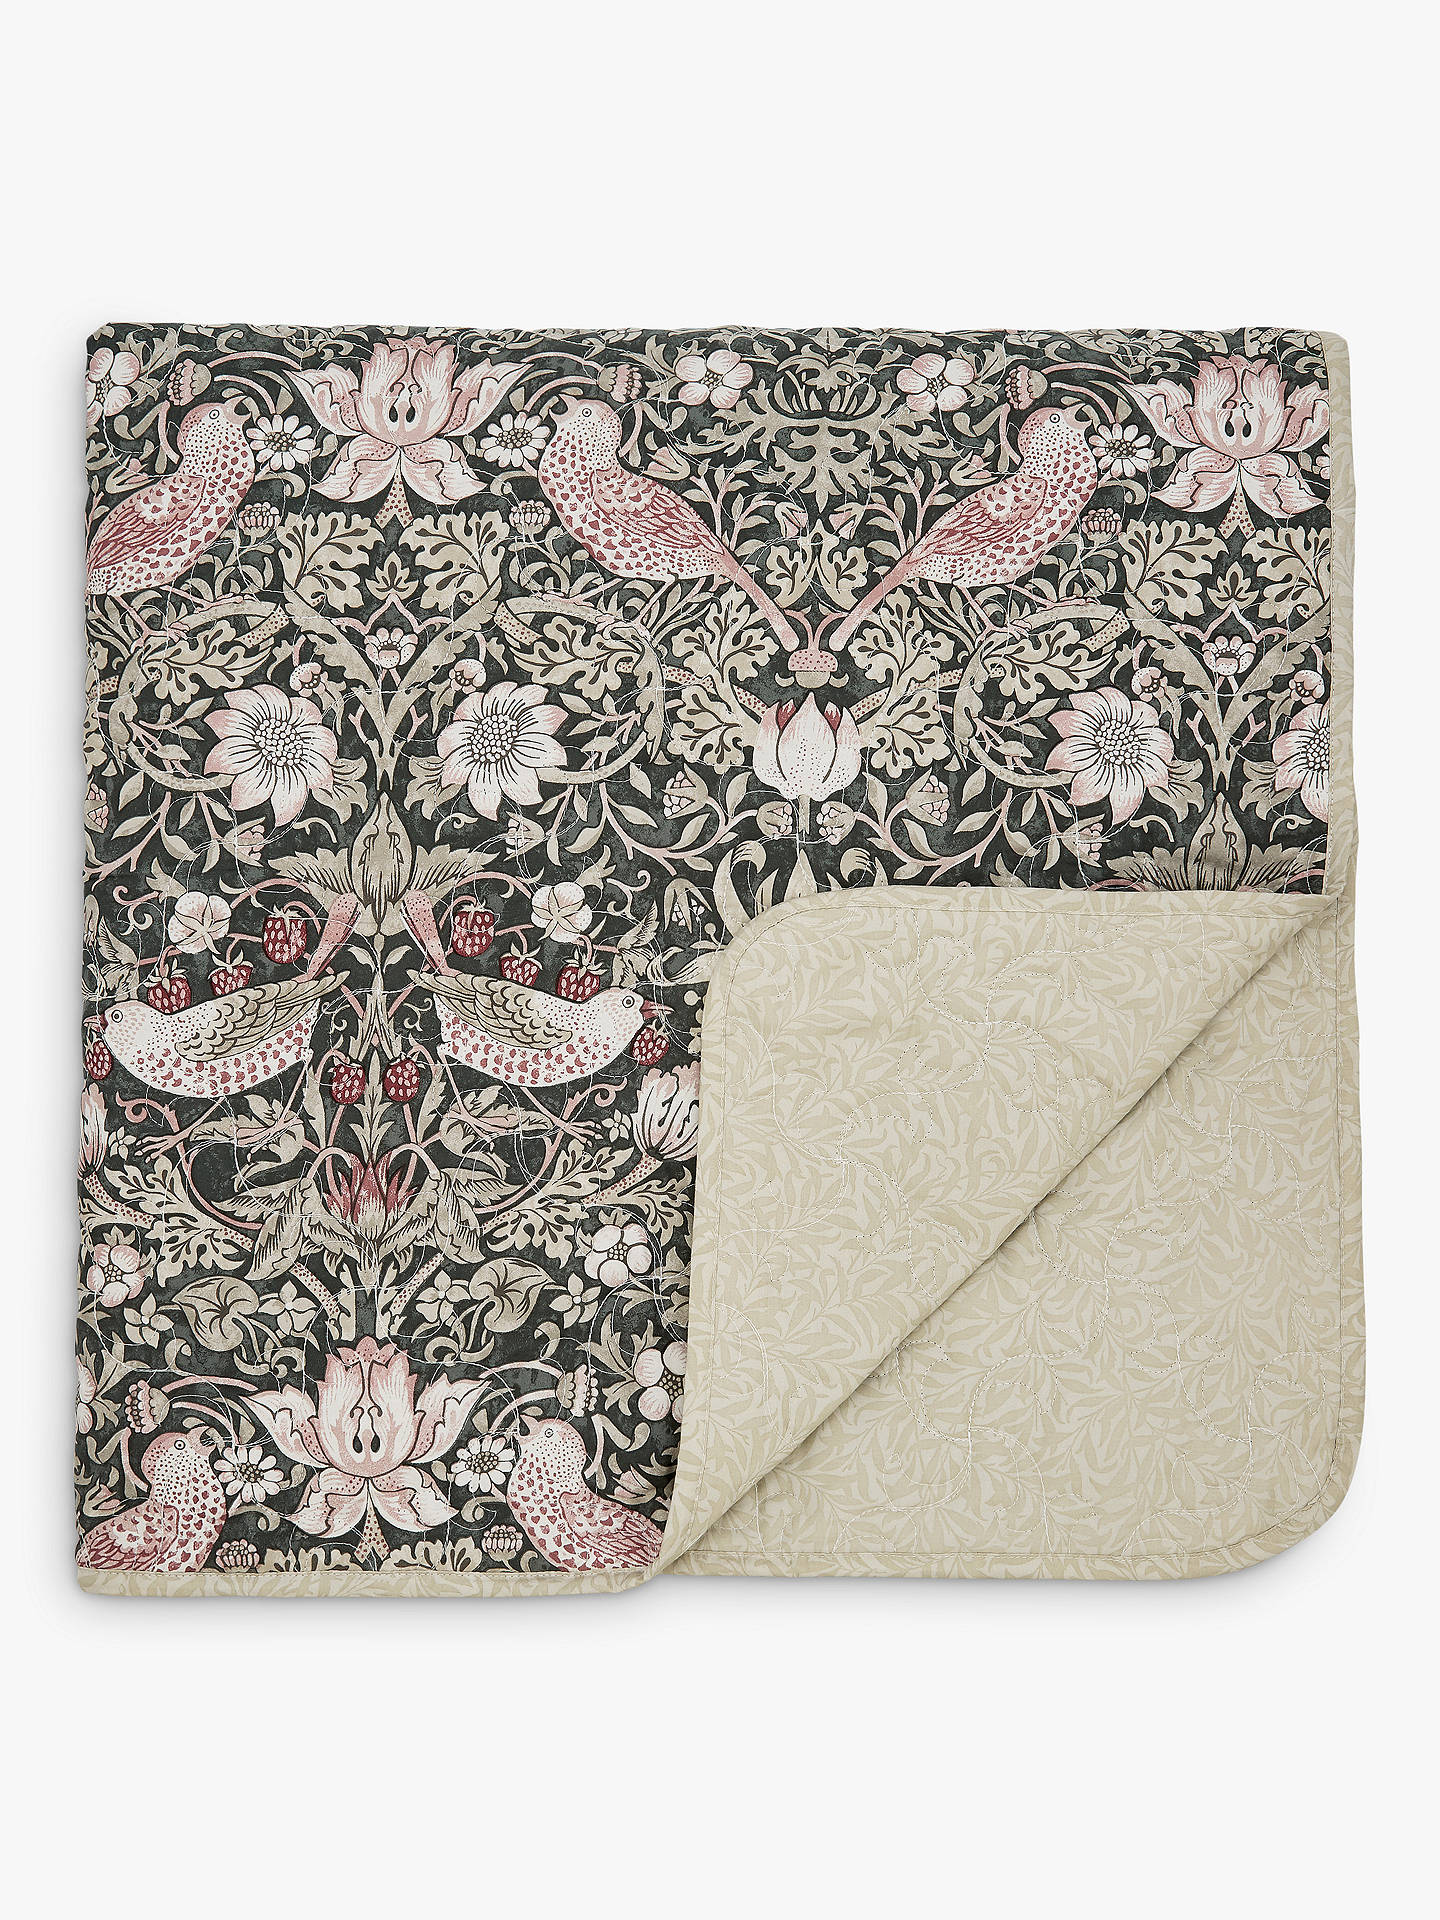 Buy Morris & Co. Strawberry Thief Bedspread, Charcoal / Blush Online at johnlewis.com